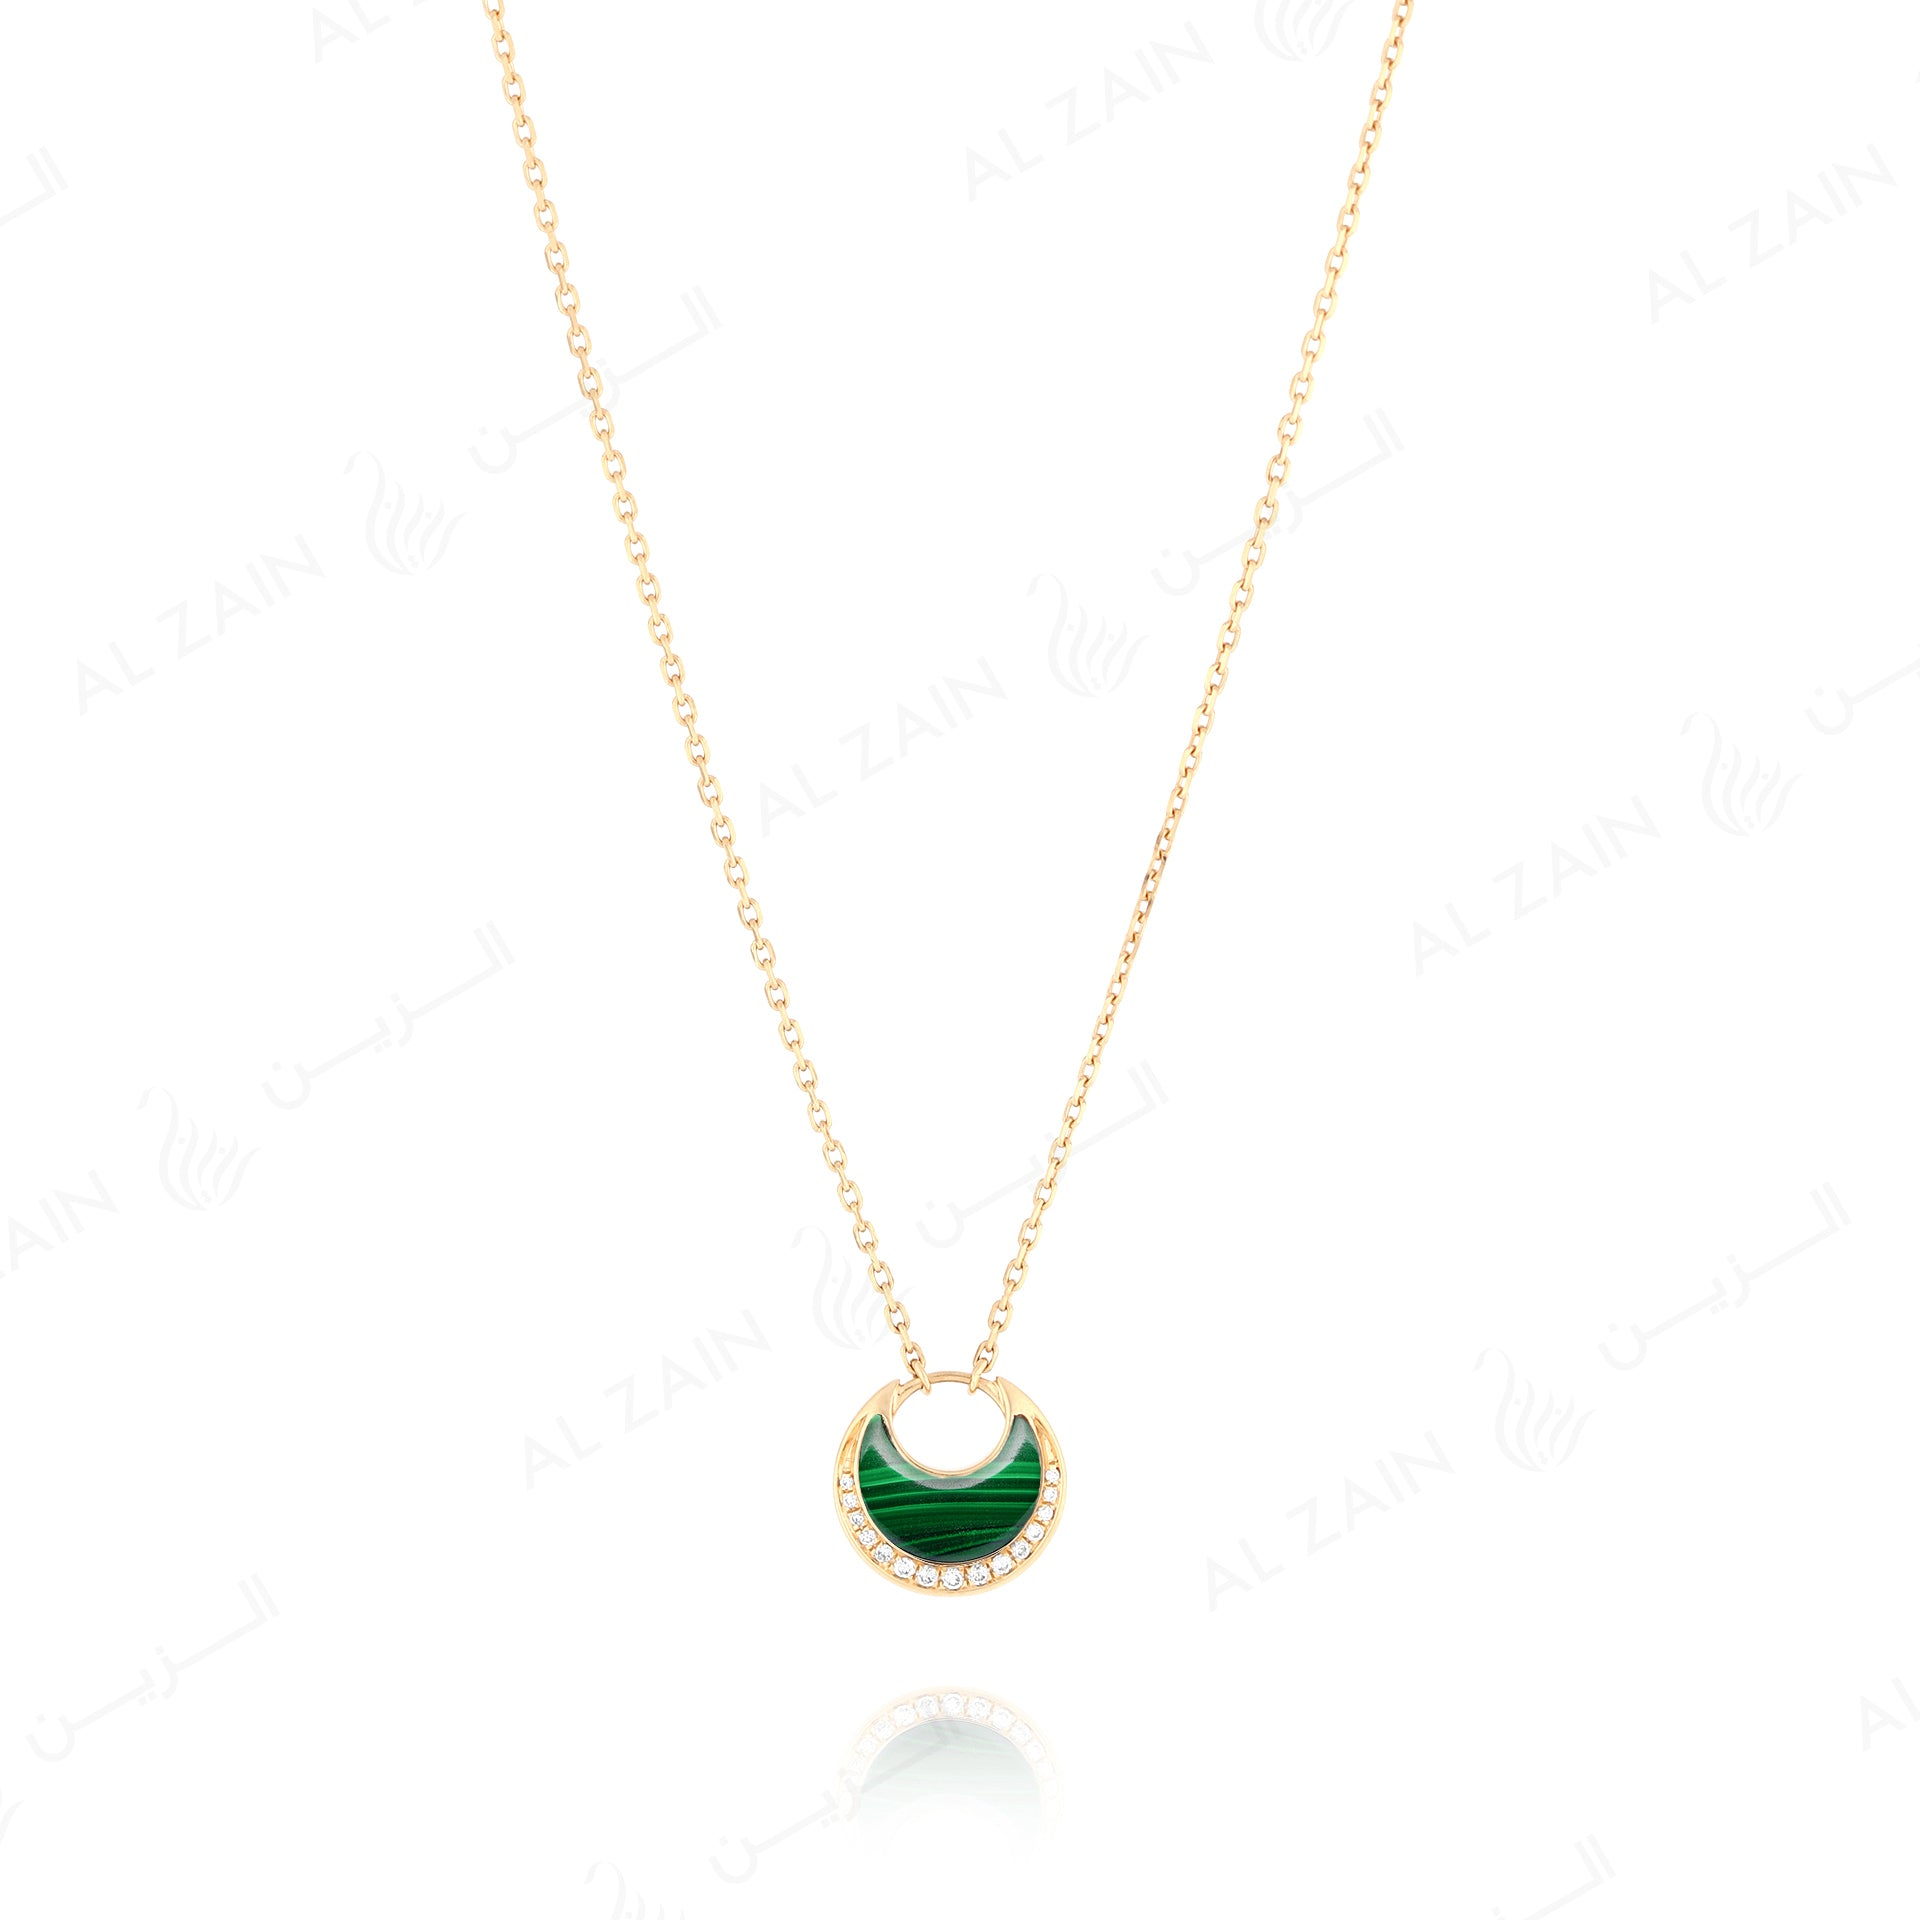 Al Hilal necklace in yellow gold with malachite stone and diamonds - Al Zain Jewellery